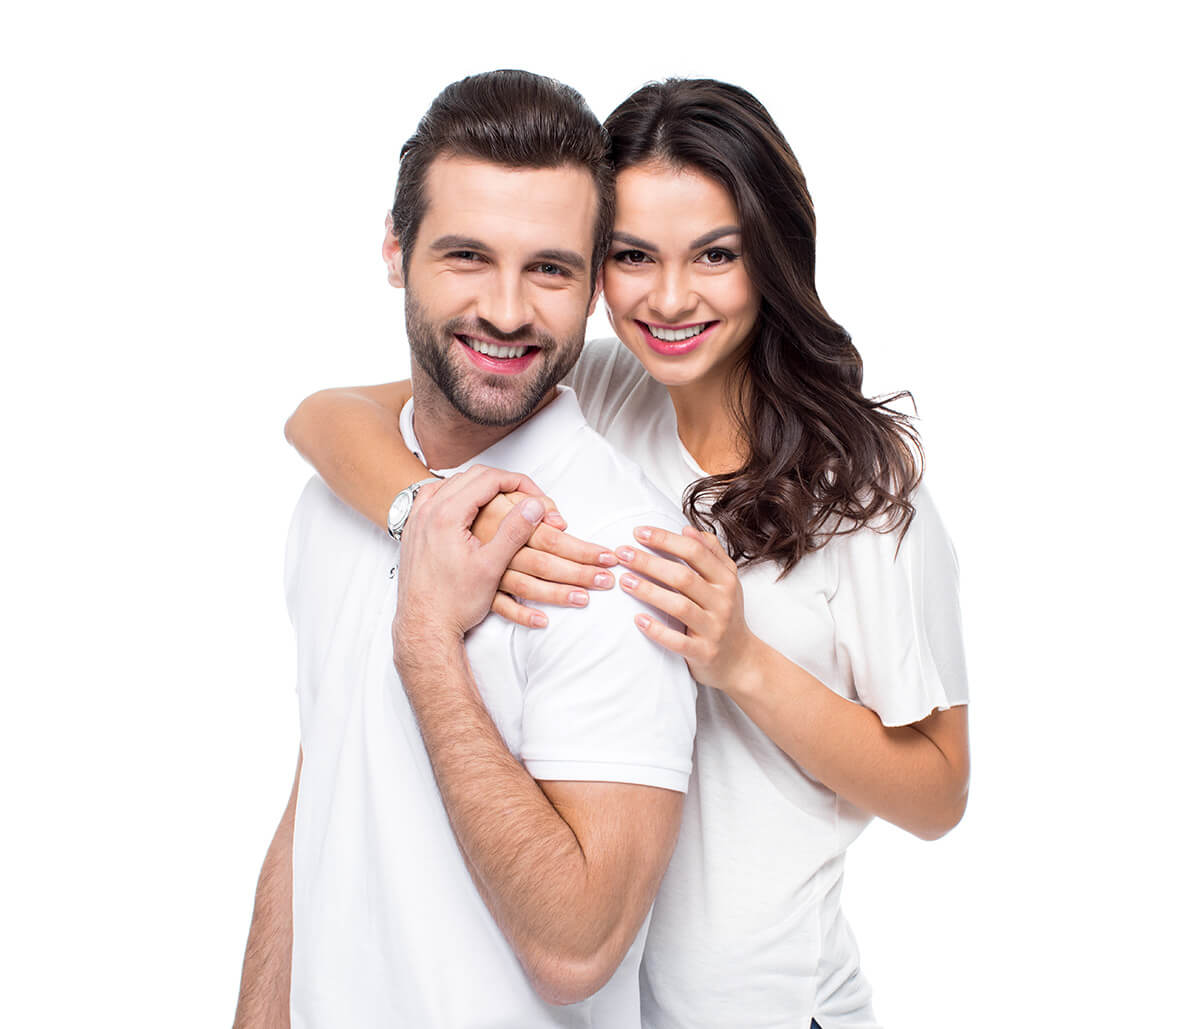 Randall G. Viola, D.D.S. Benefit from professional teeth whitening that lifts even the most stubborn stains in Nashua, NH